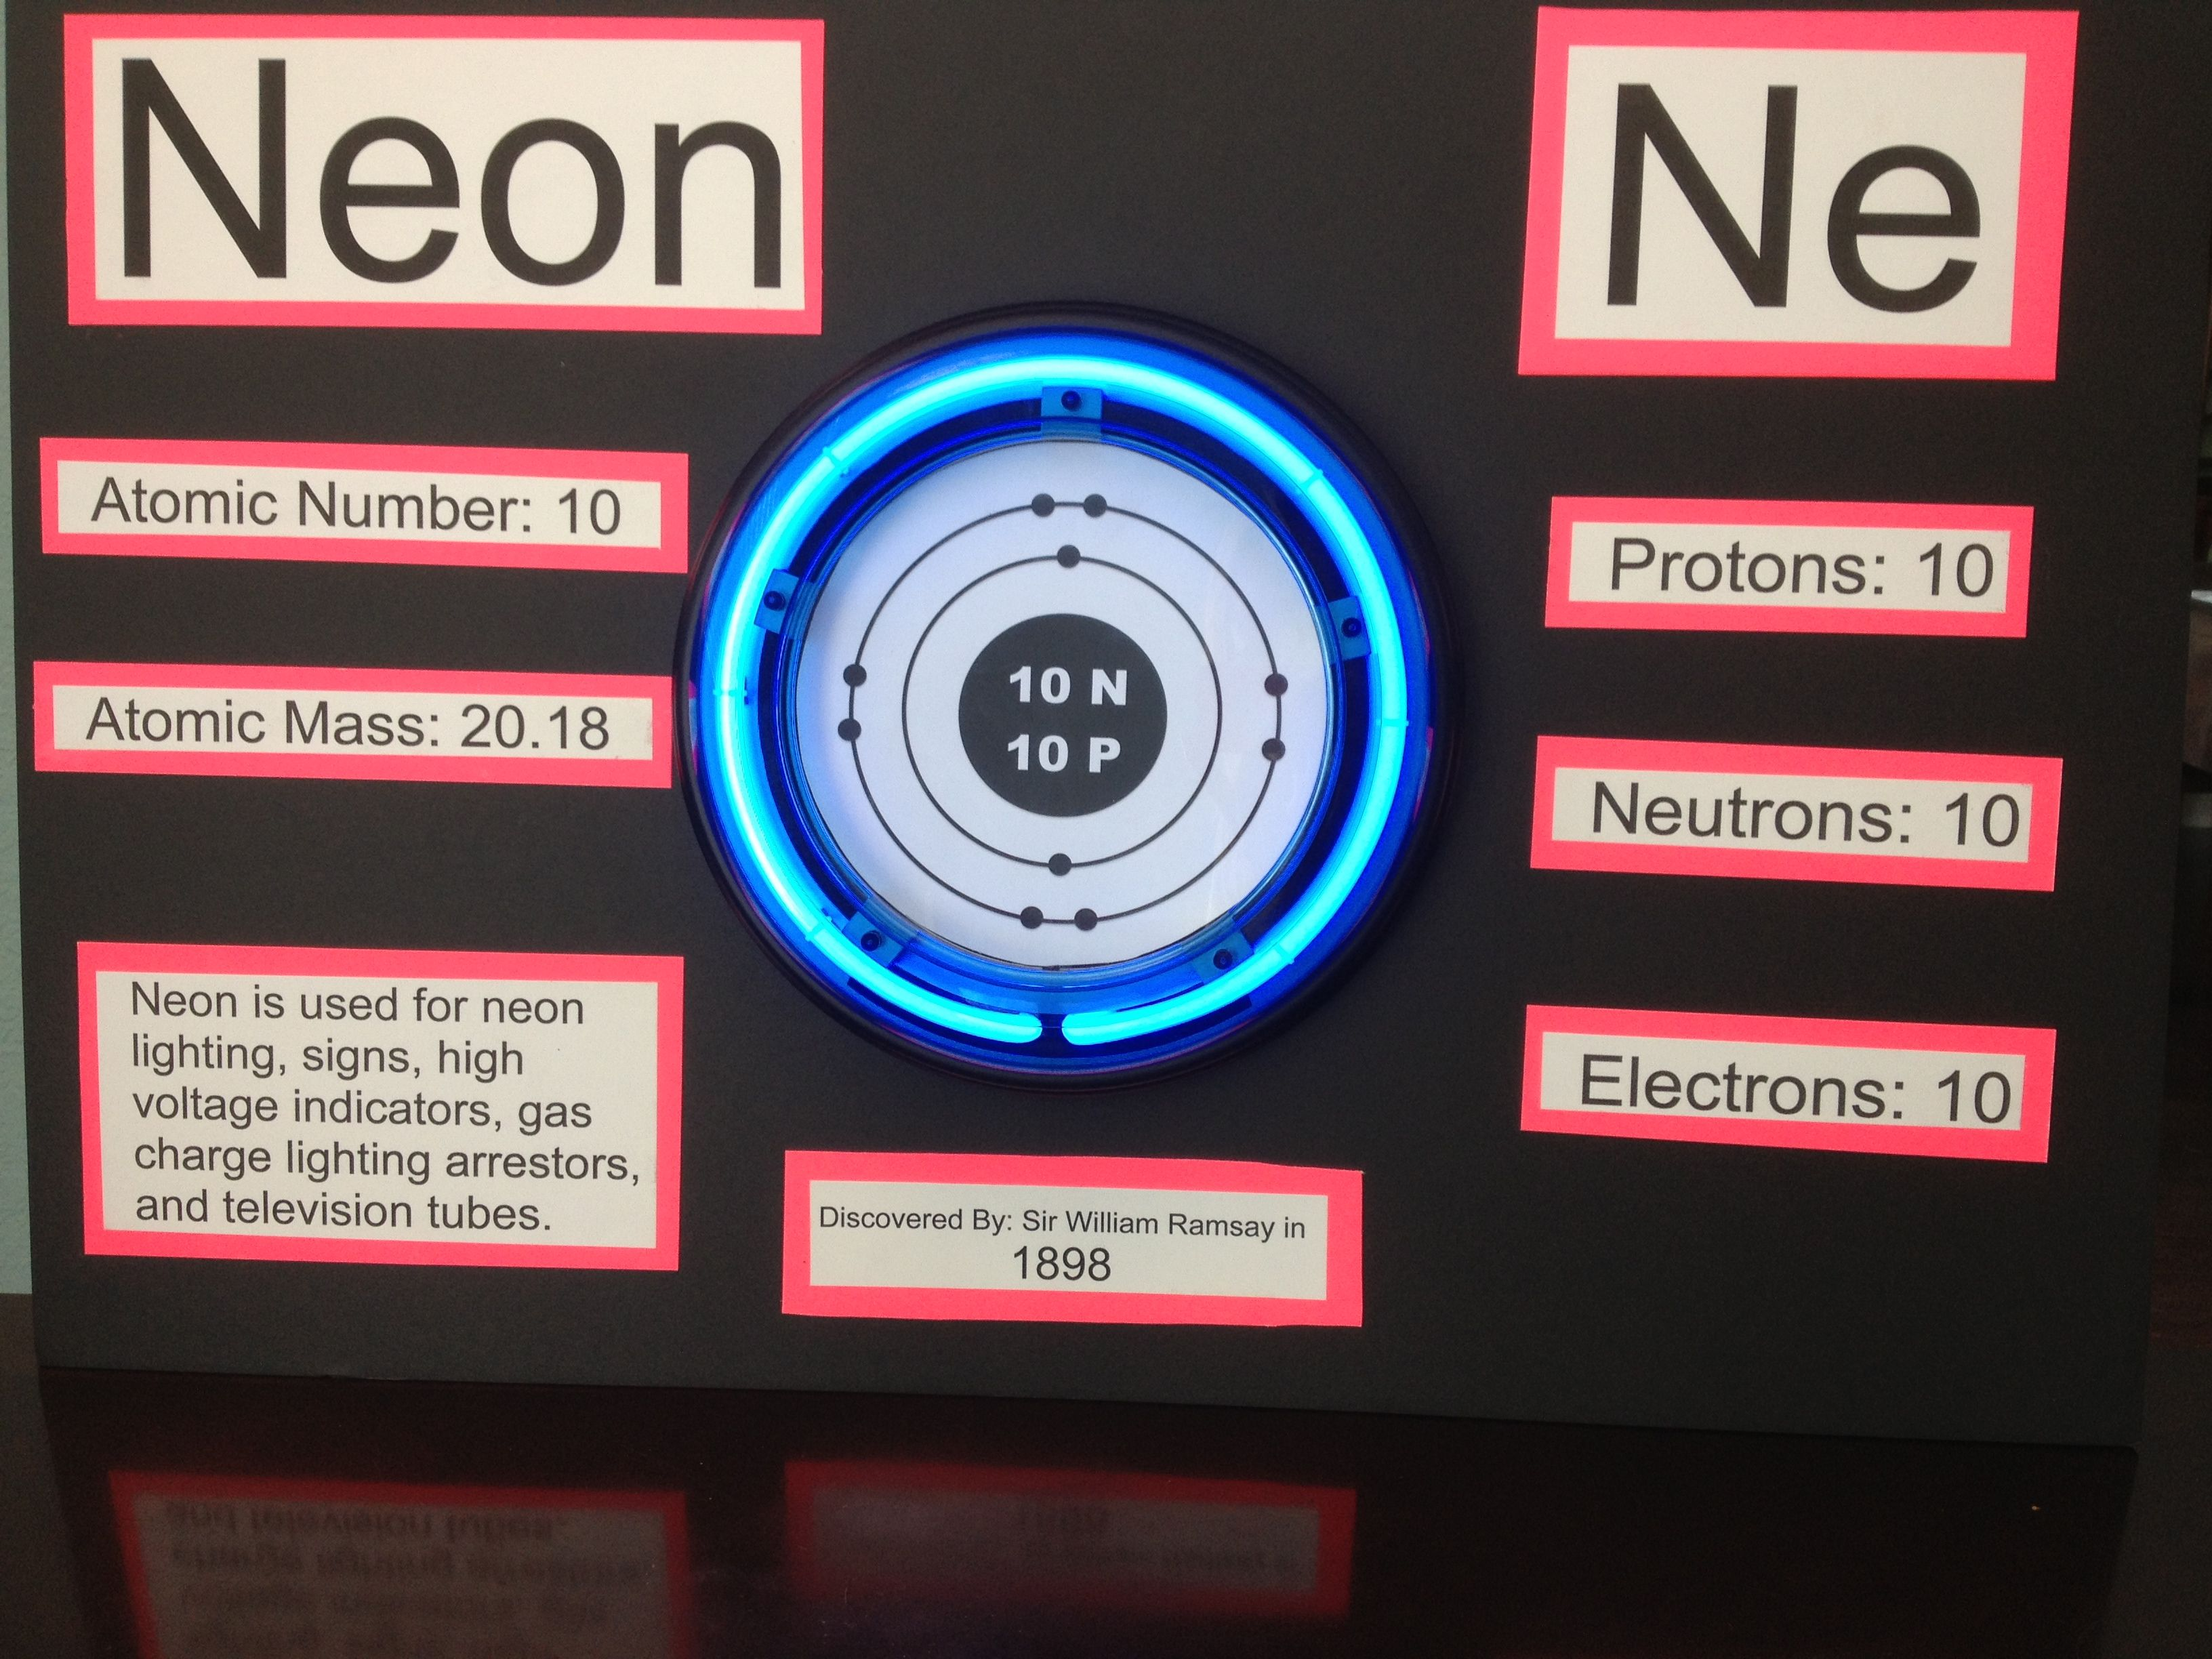 medium resolution of neon element